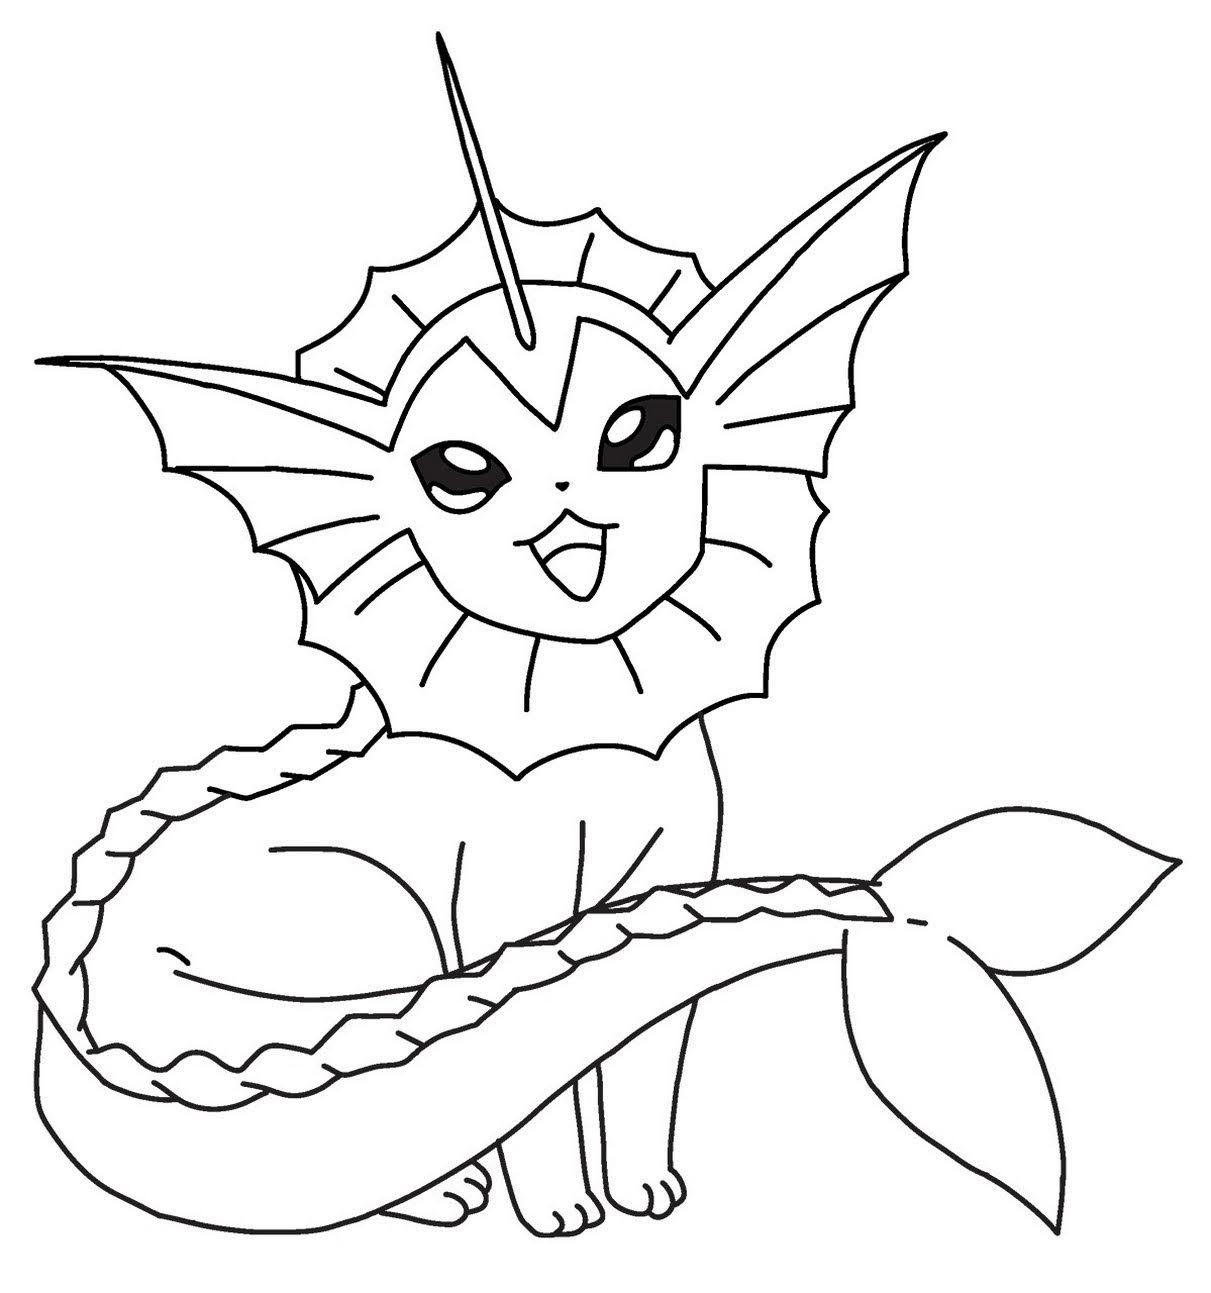 Pokemon Vaporeon Coloring Pages Pokemon Coloring Sheets Pokemon